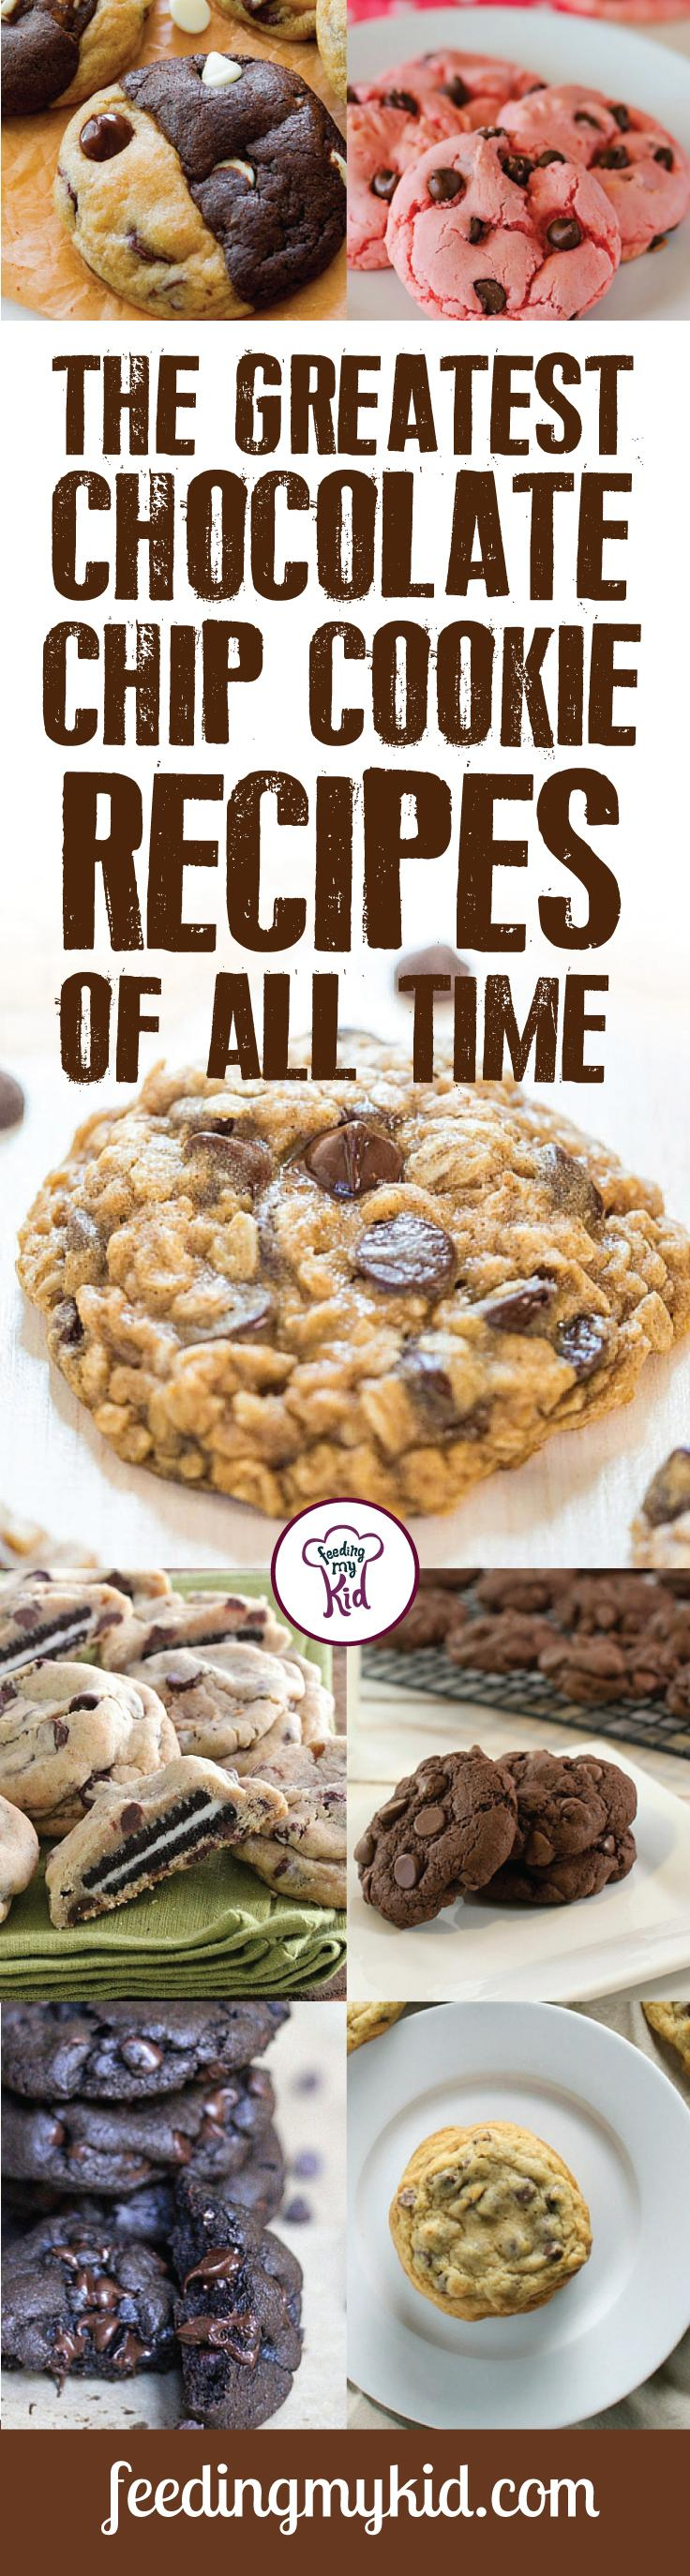 The Greatest Chocolate Chip Cookie Recipes Of All Time. This is a must pin !Try these great chocolate chip cookies recipes. From double chocolate chip to inside out chocolate chip! Feeding My Kid is a great website for healthy recipes, dinner recipes and ways to eat clean. #easyrecipes #recipes #FMK